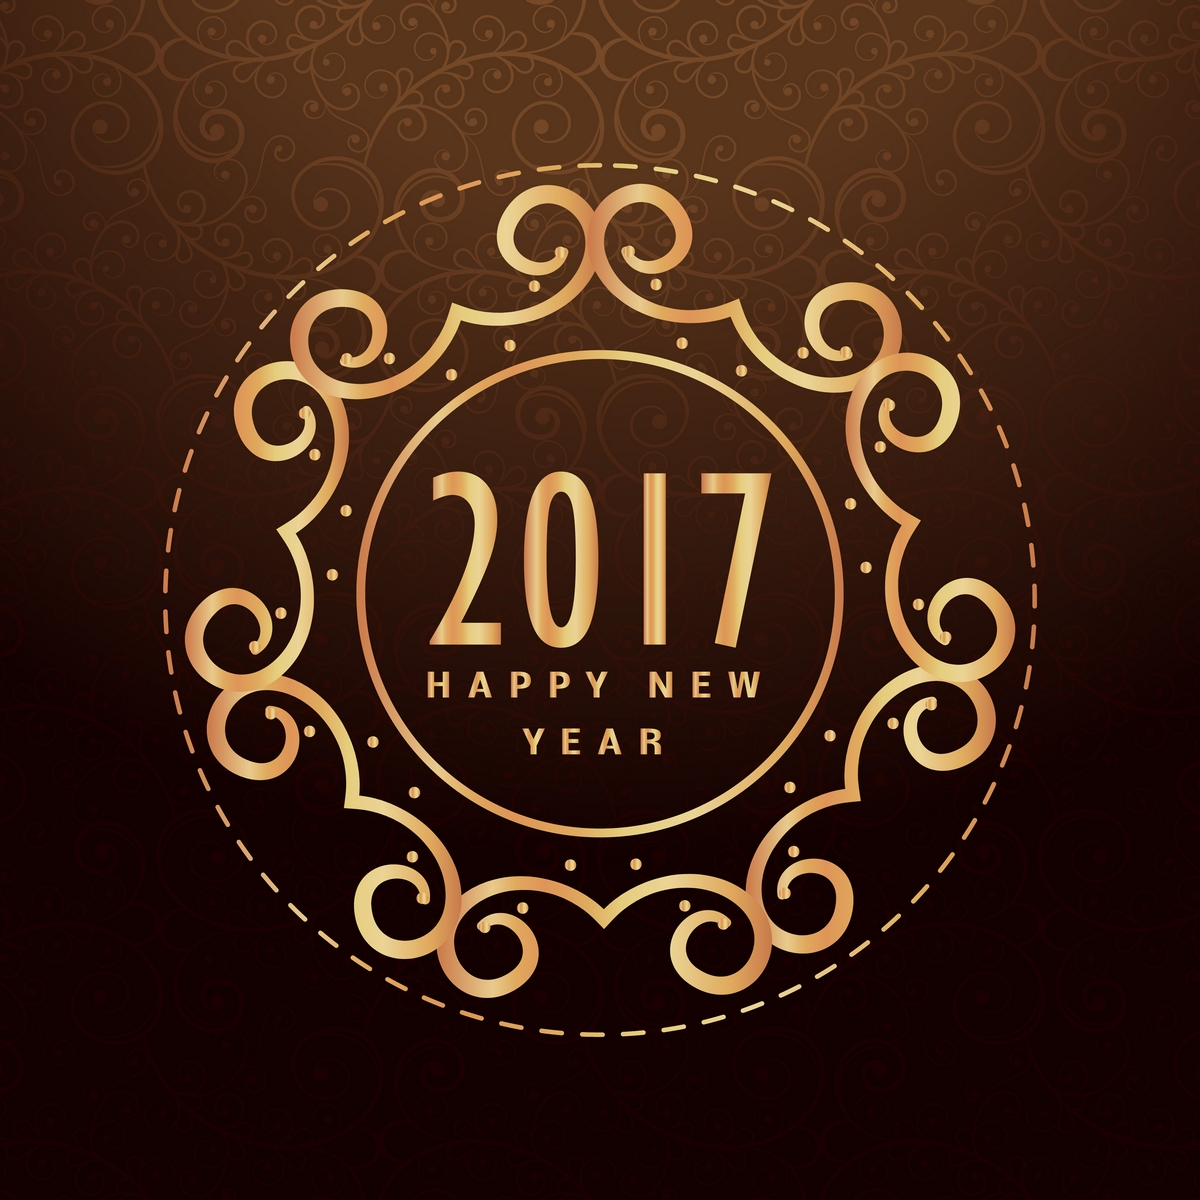 Happy New Year 2017 Photo Cards Free Download